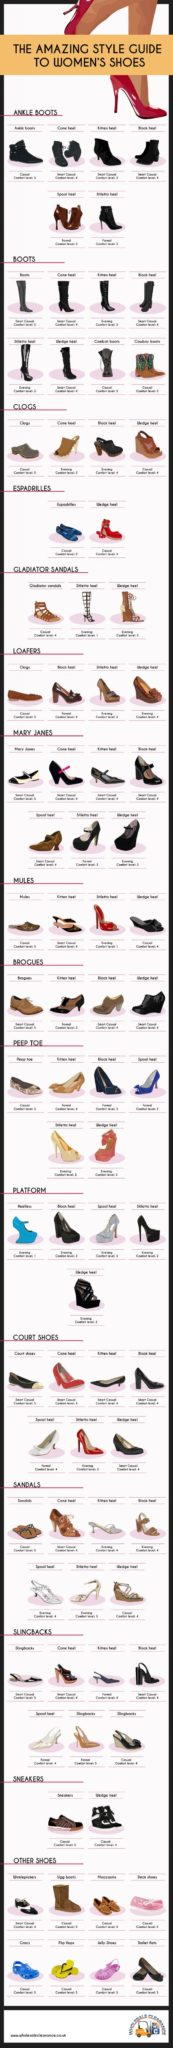 Shoes Every Woman Should Have